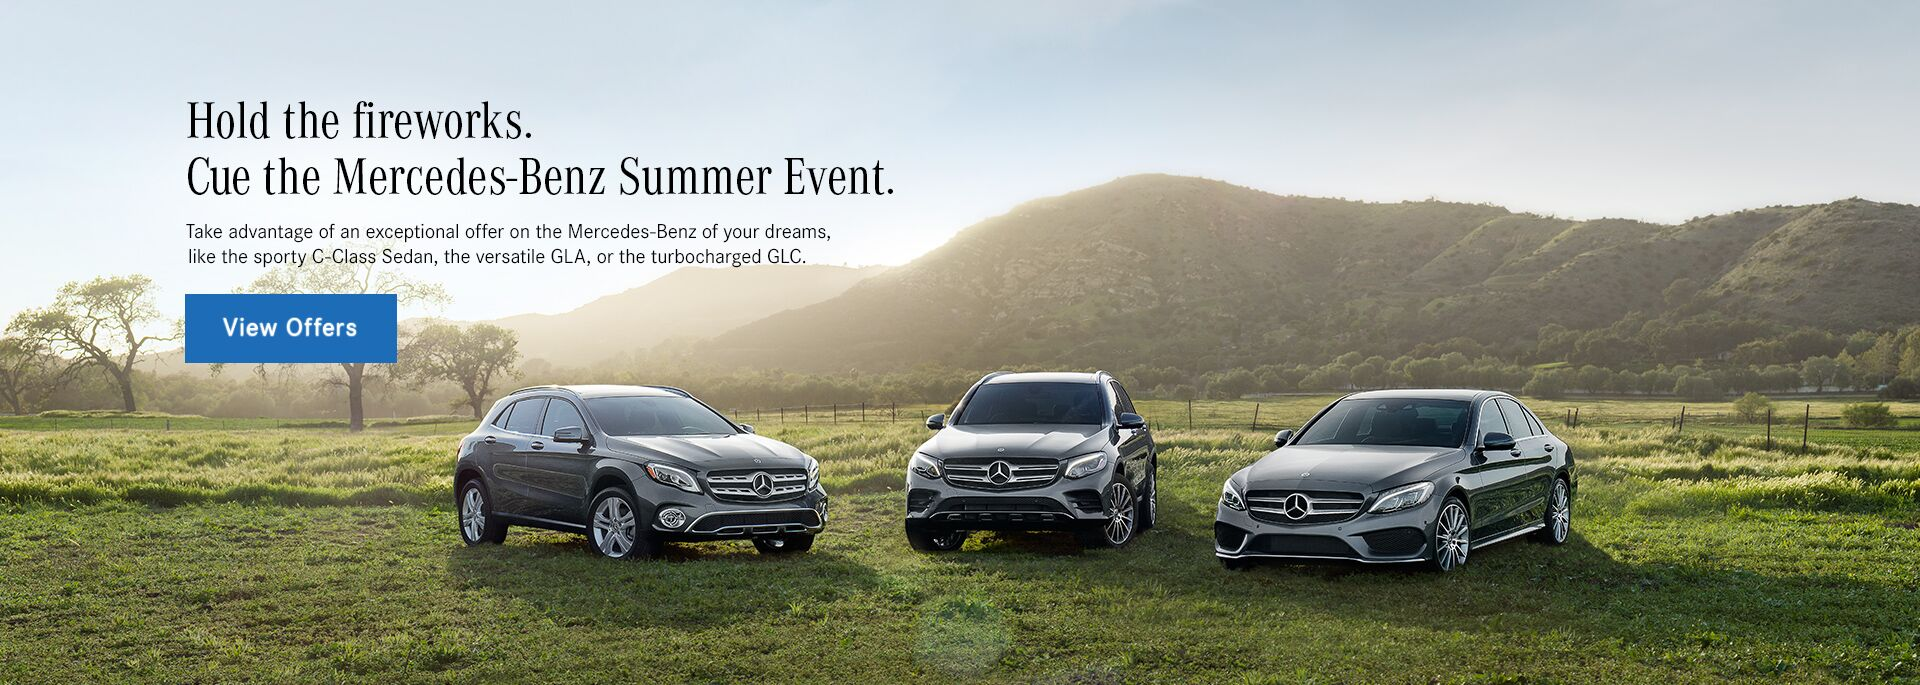 Mercedes benz dealership morristown nj used cars for Mercedes benz cutler bay service hours